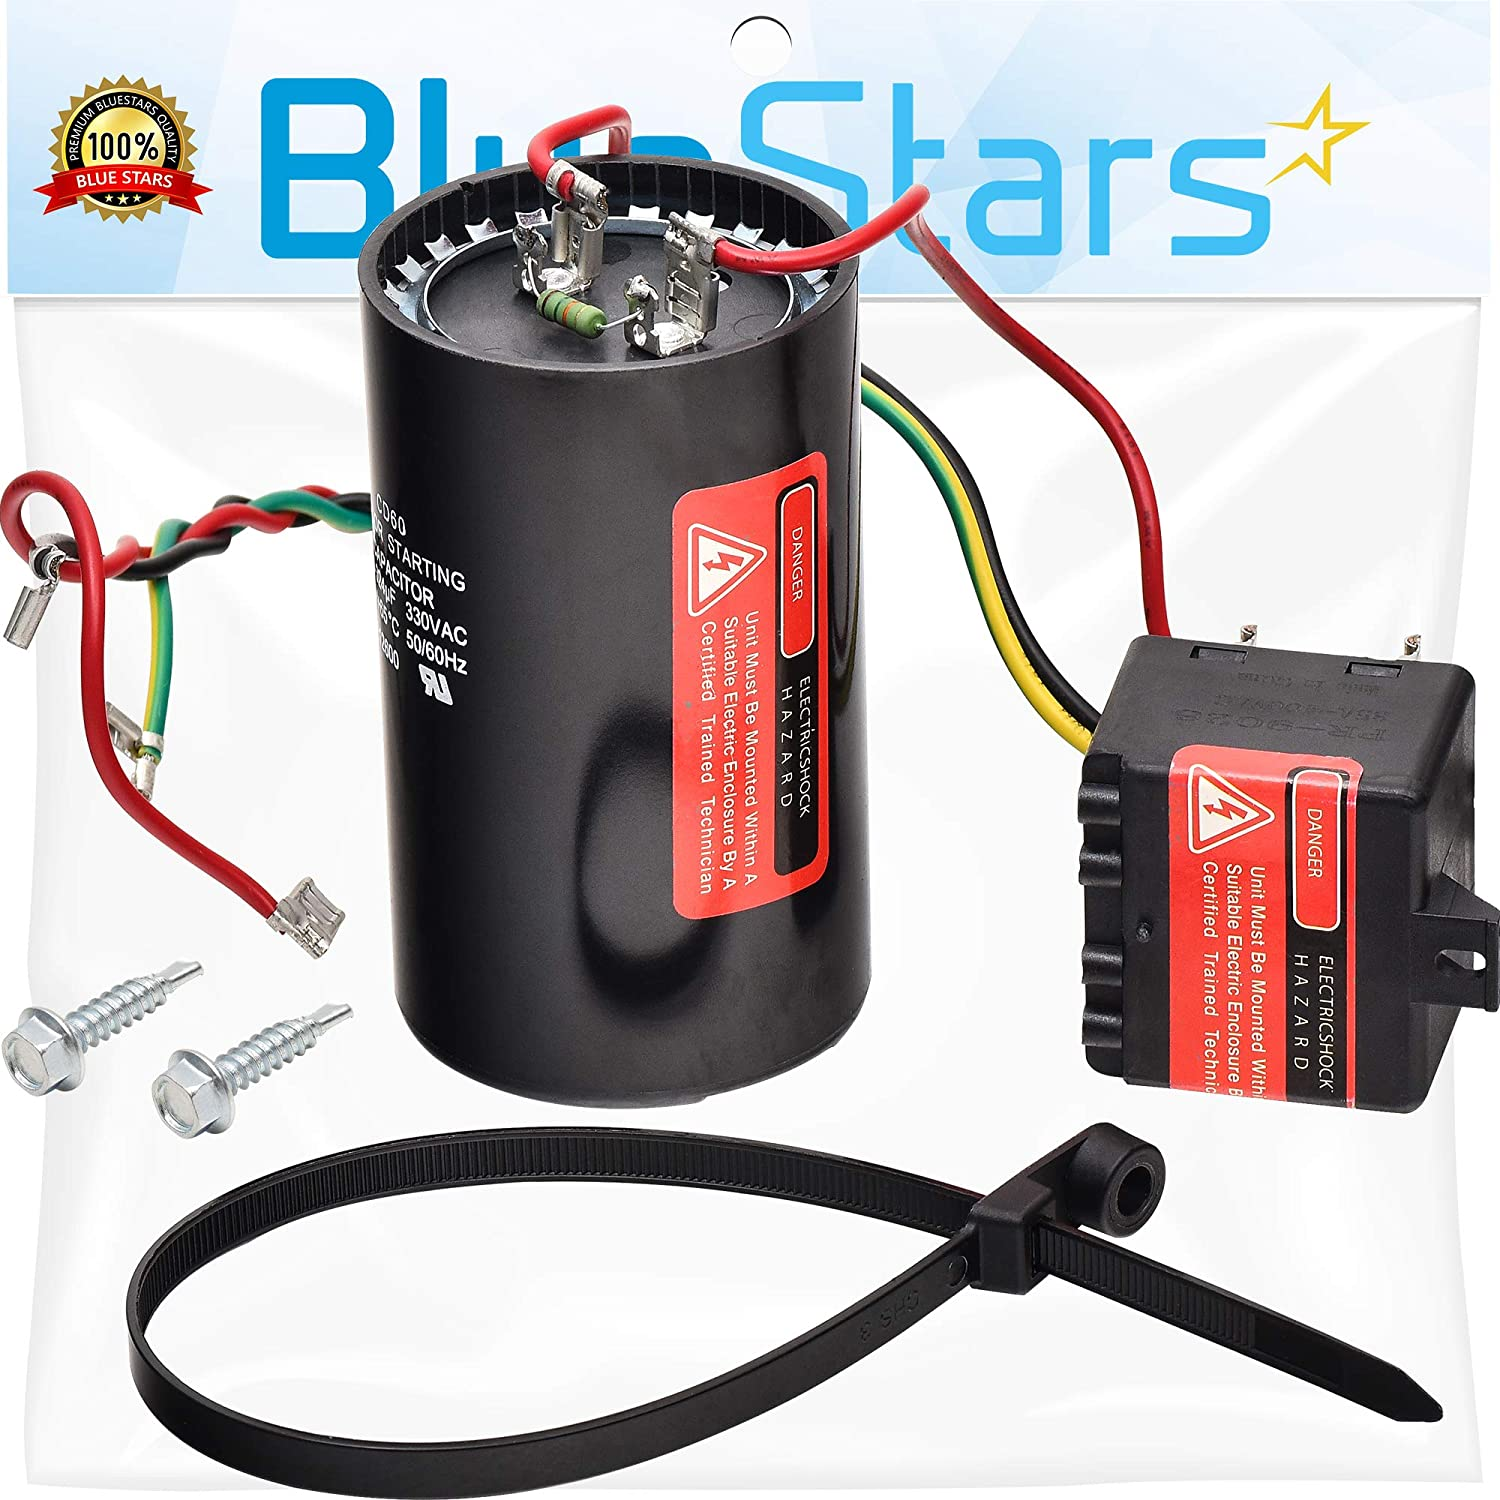 5-2-1 CSR-U3 Compressor Saver Hard Start Capacitor by Blue Stars - Compatible for 4 to 5 Ton Units